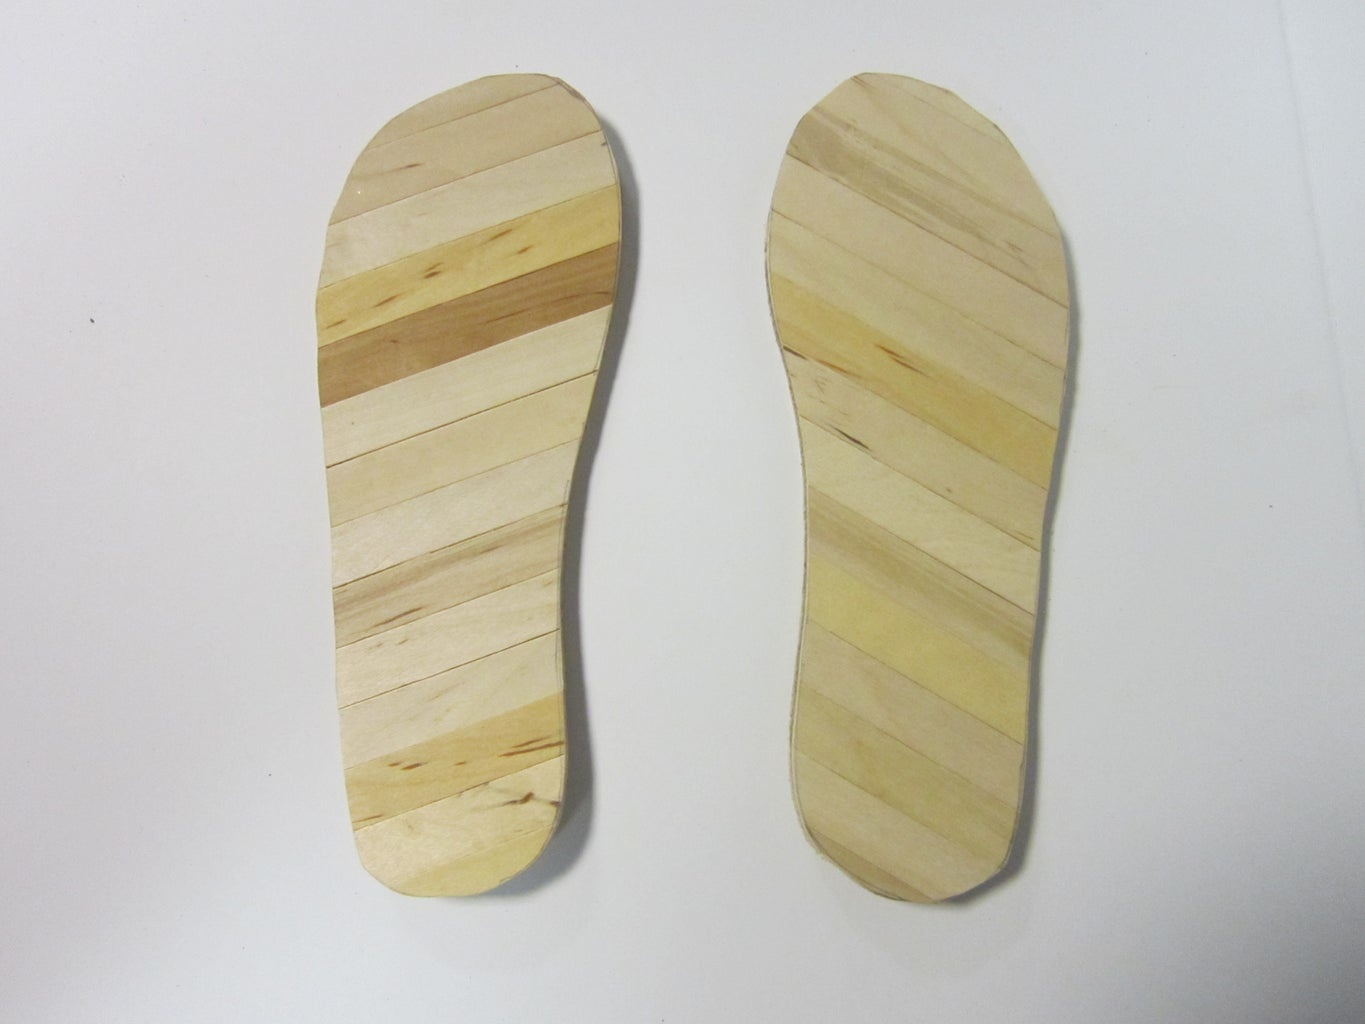 Shaping the Soles